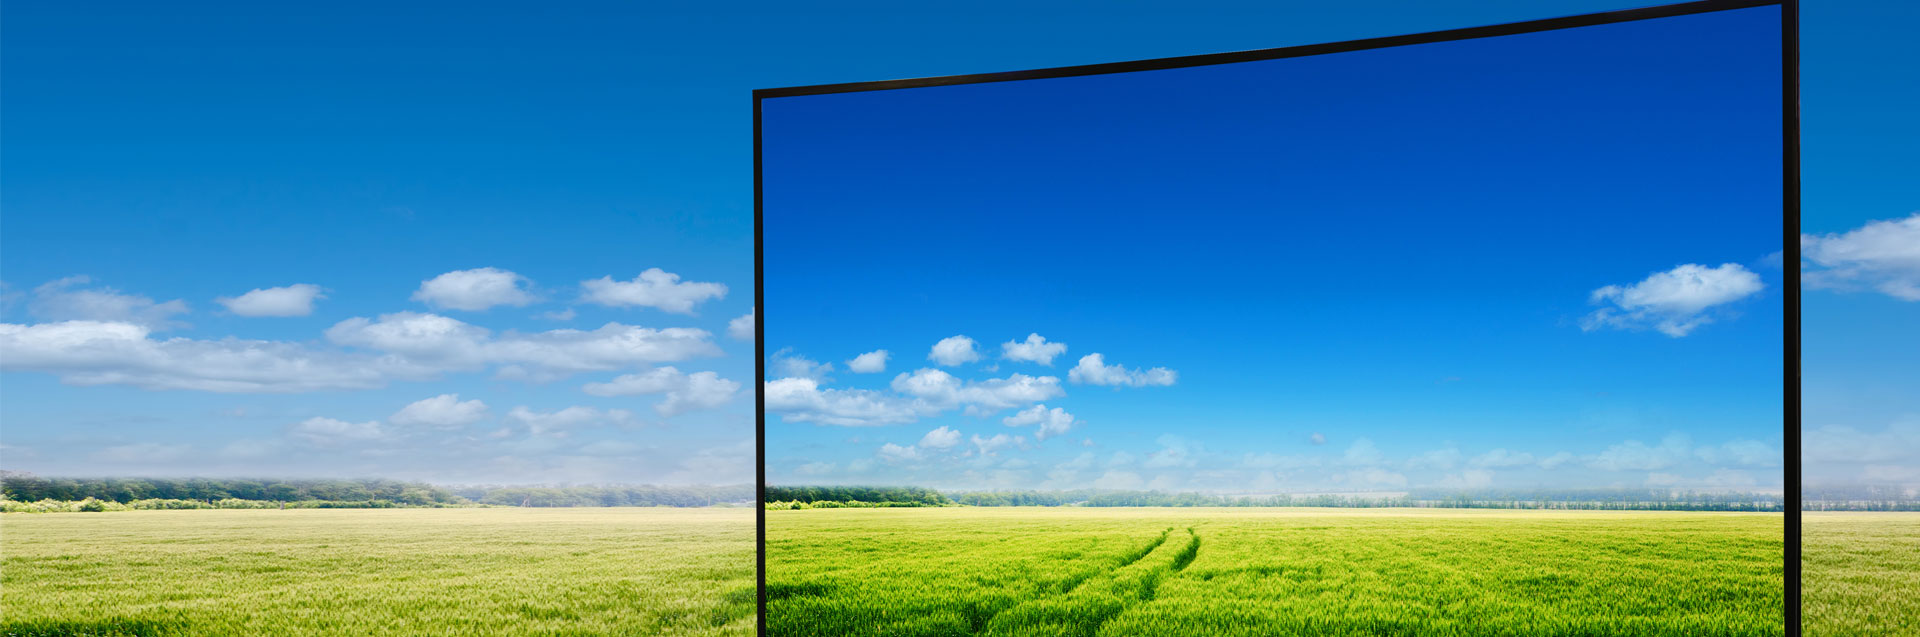 Outdoor LCD Display Solutions